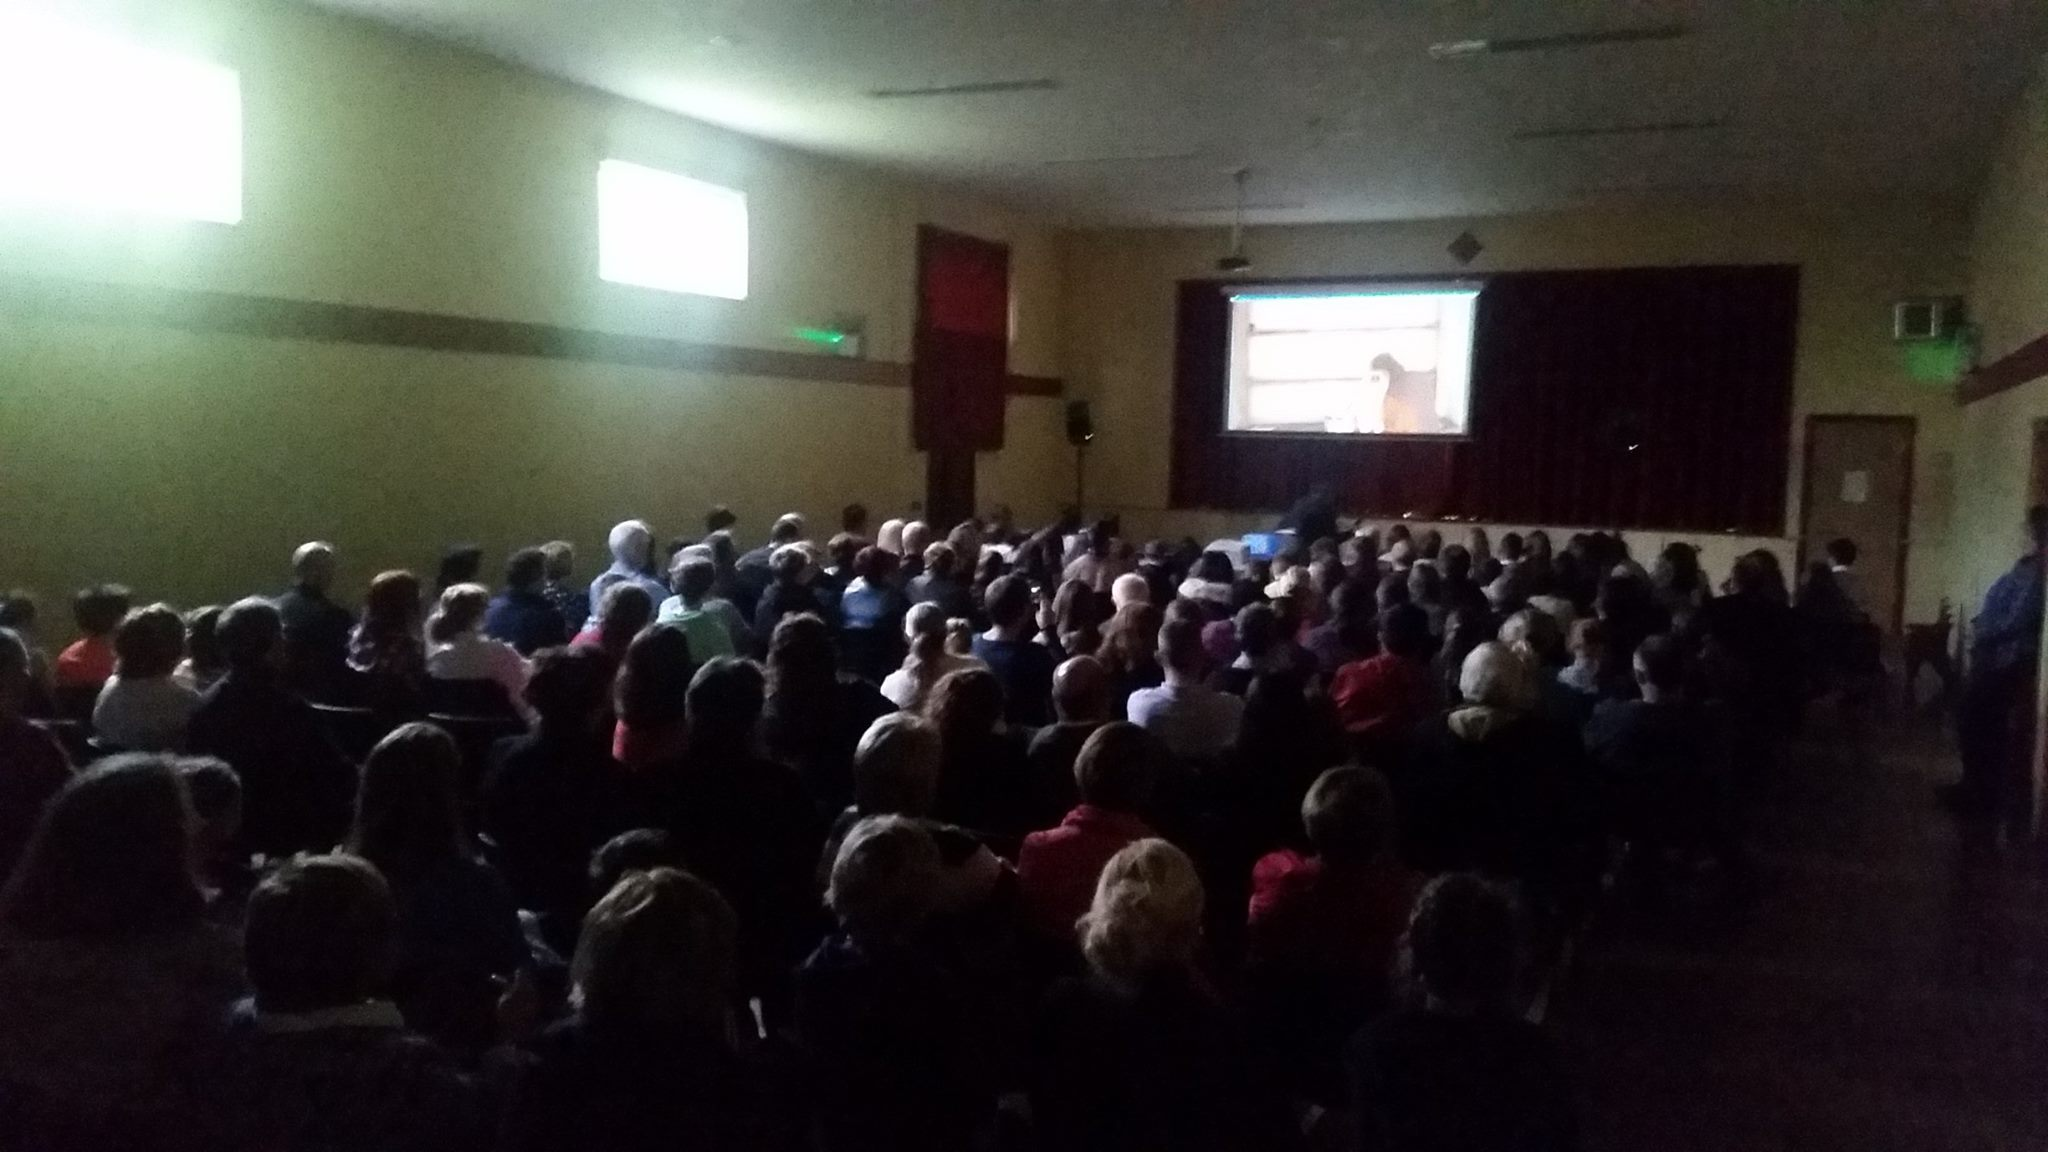 A packed house at Knocklong Community Hall for the launch of The Rescue DVD